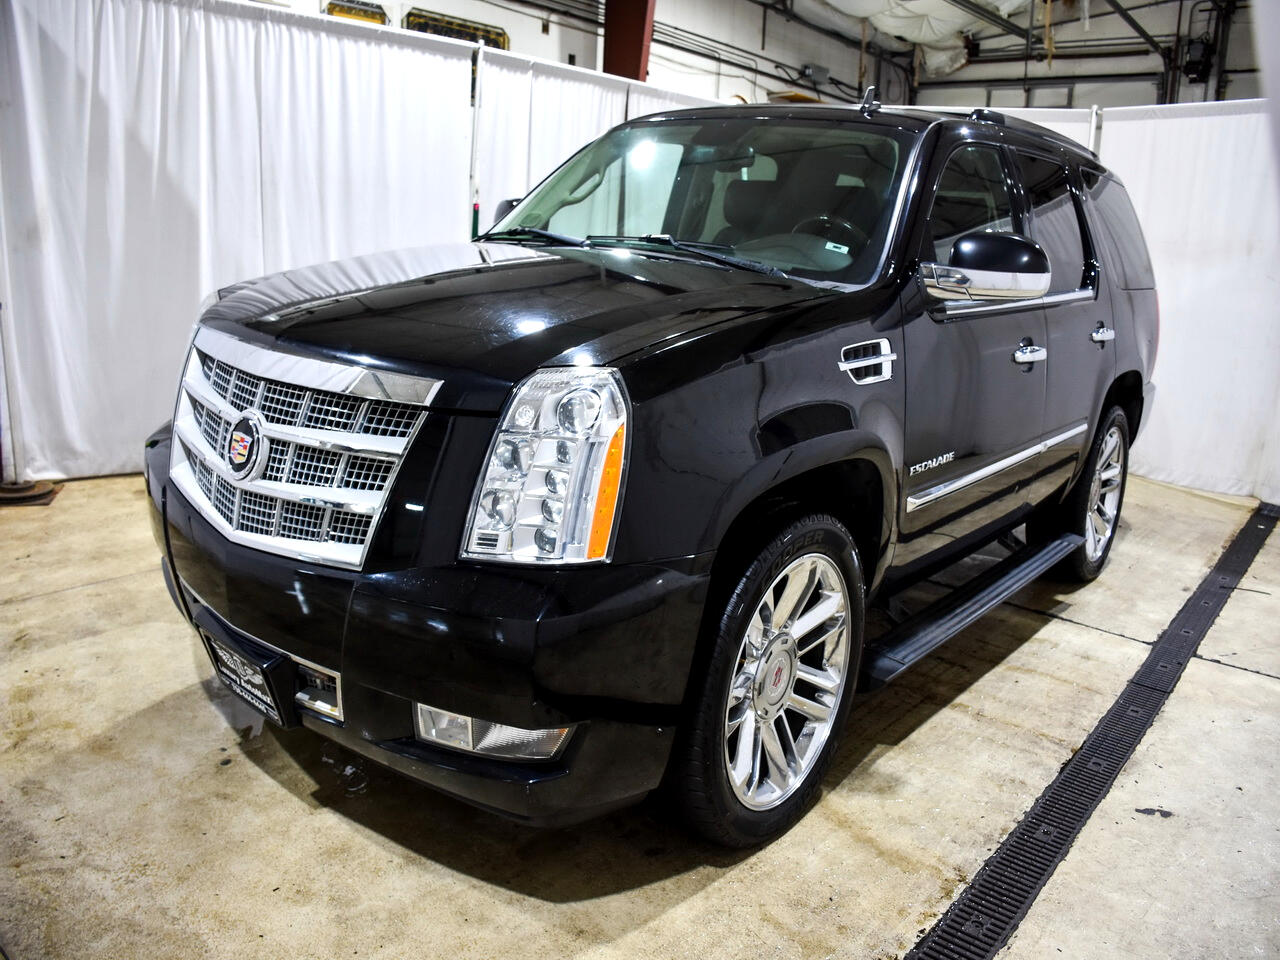 2011 Cadillac Escalade Platinum AWD 4 Captian Chairs 3 Rear TV DVD Remote